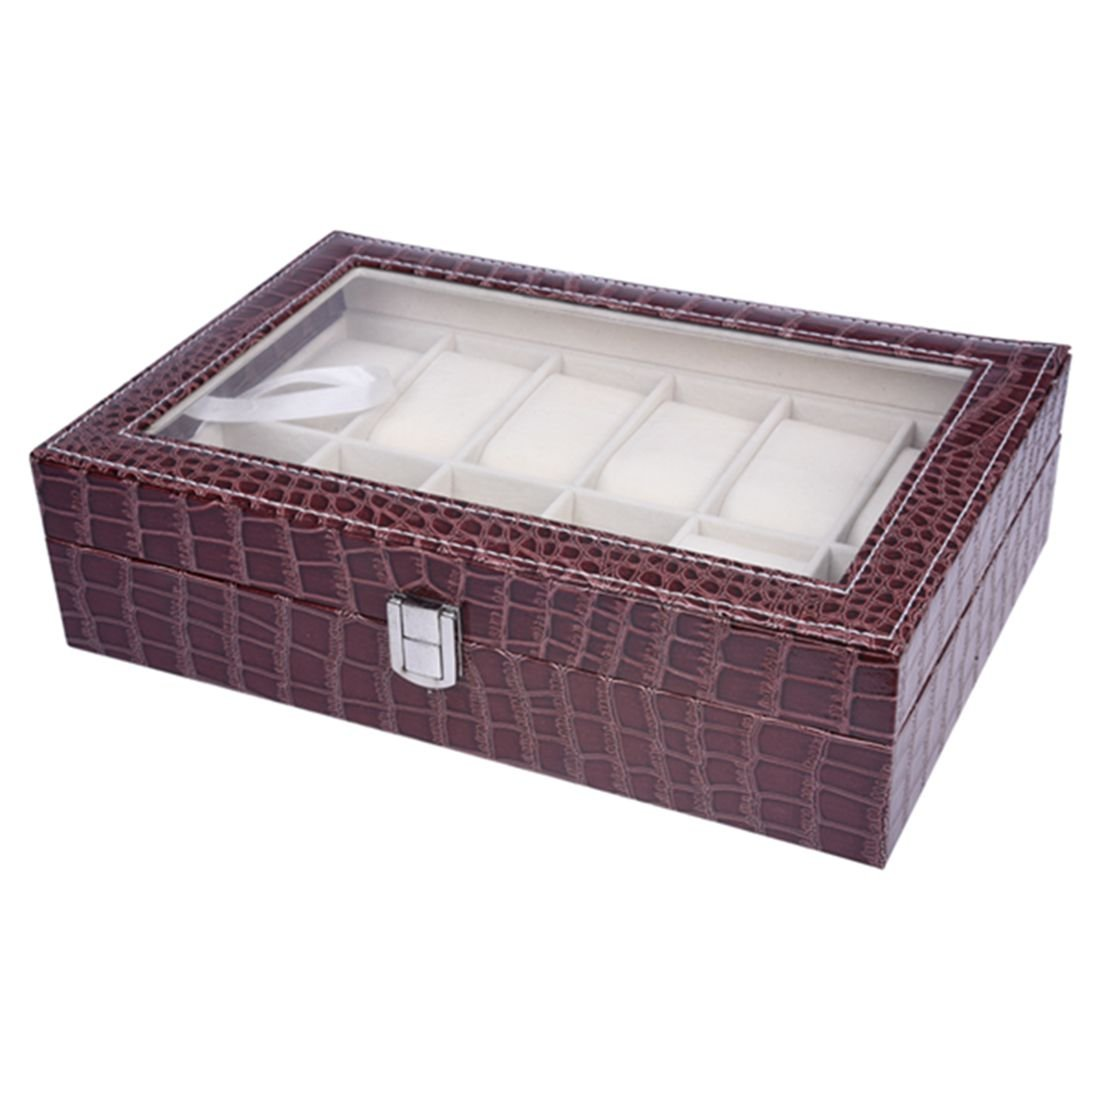 SODIAL(R) Faux Leather Watch Case Storage Display Box Organiser Jewelery Glass Top Size:12 Grid Crocodile Brown